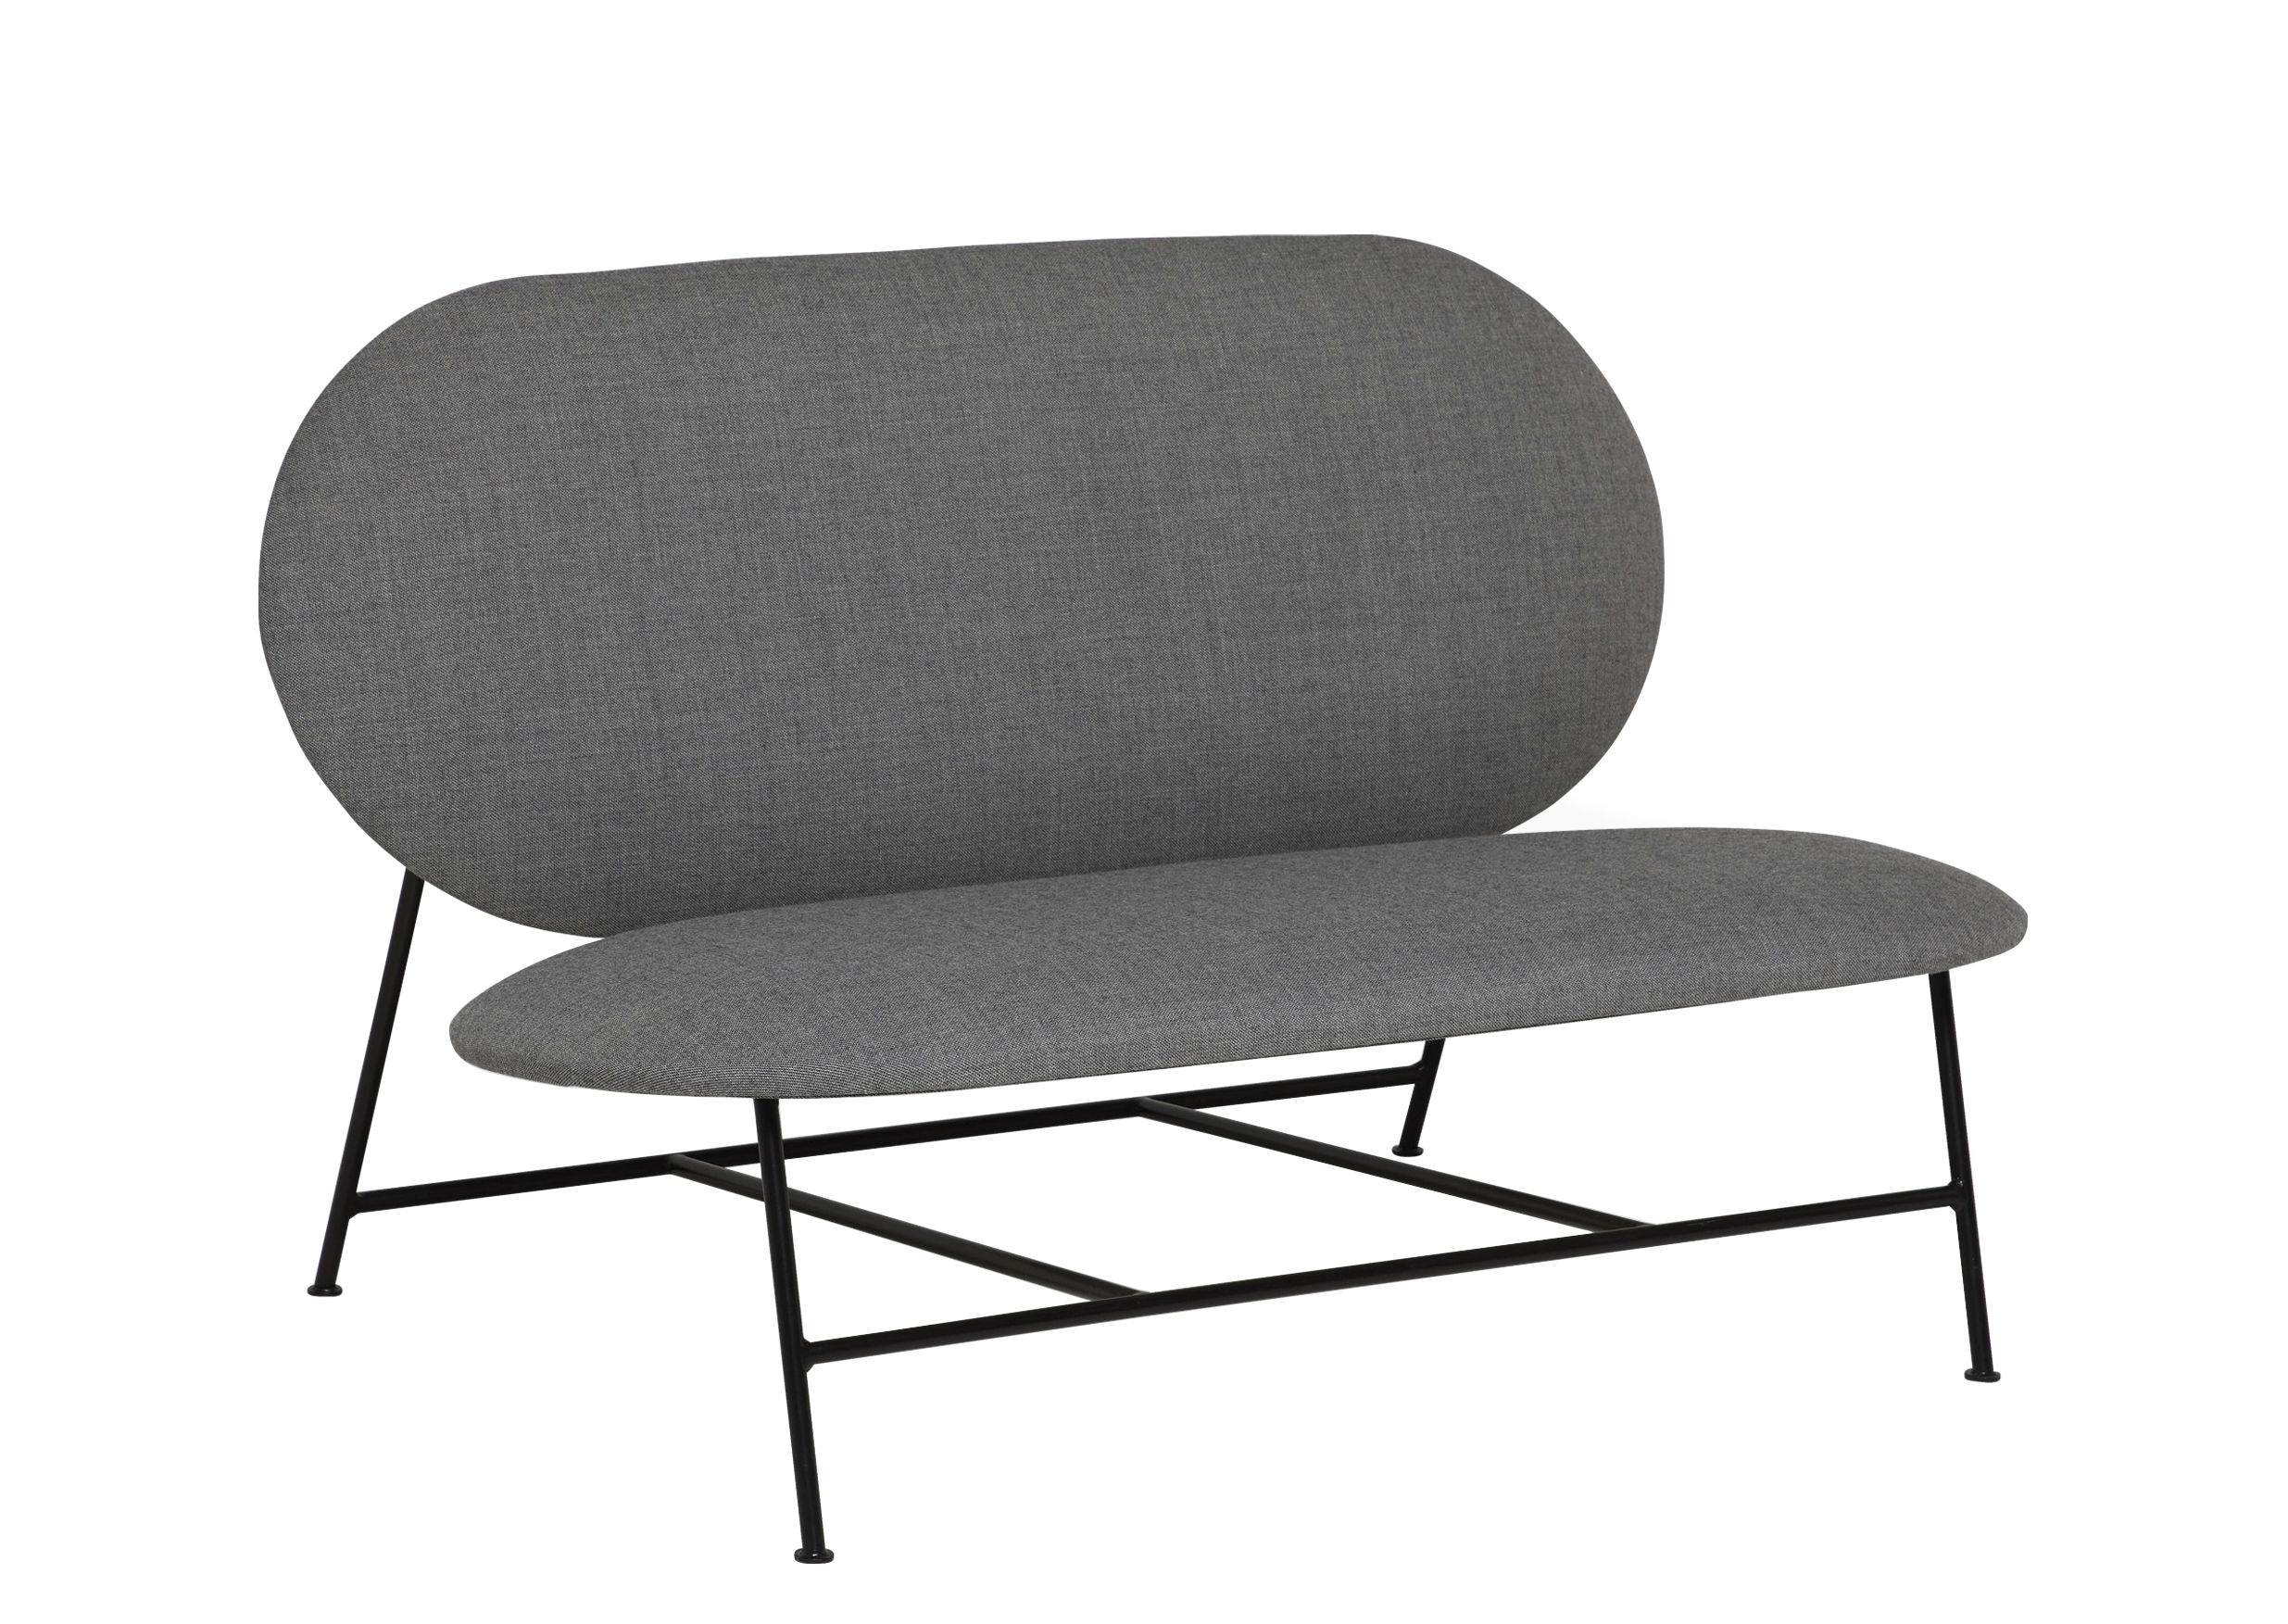 Furniture - Sofas - Oblong Straight sofa - / L 120 cm by Northern  - Grey - Fabric, Foam, Lacquered steel